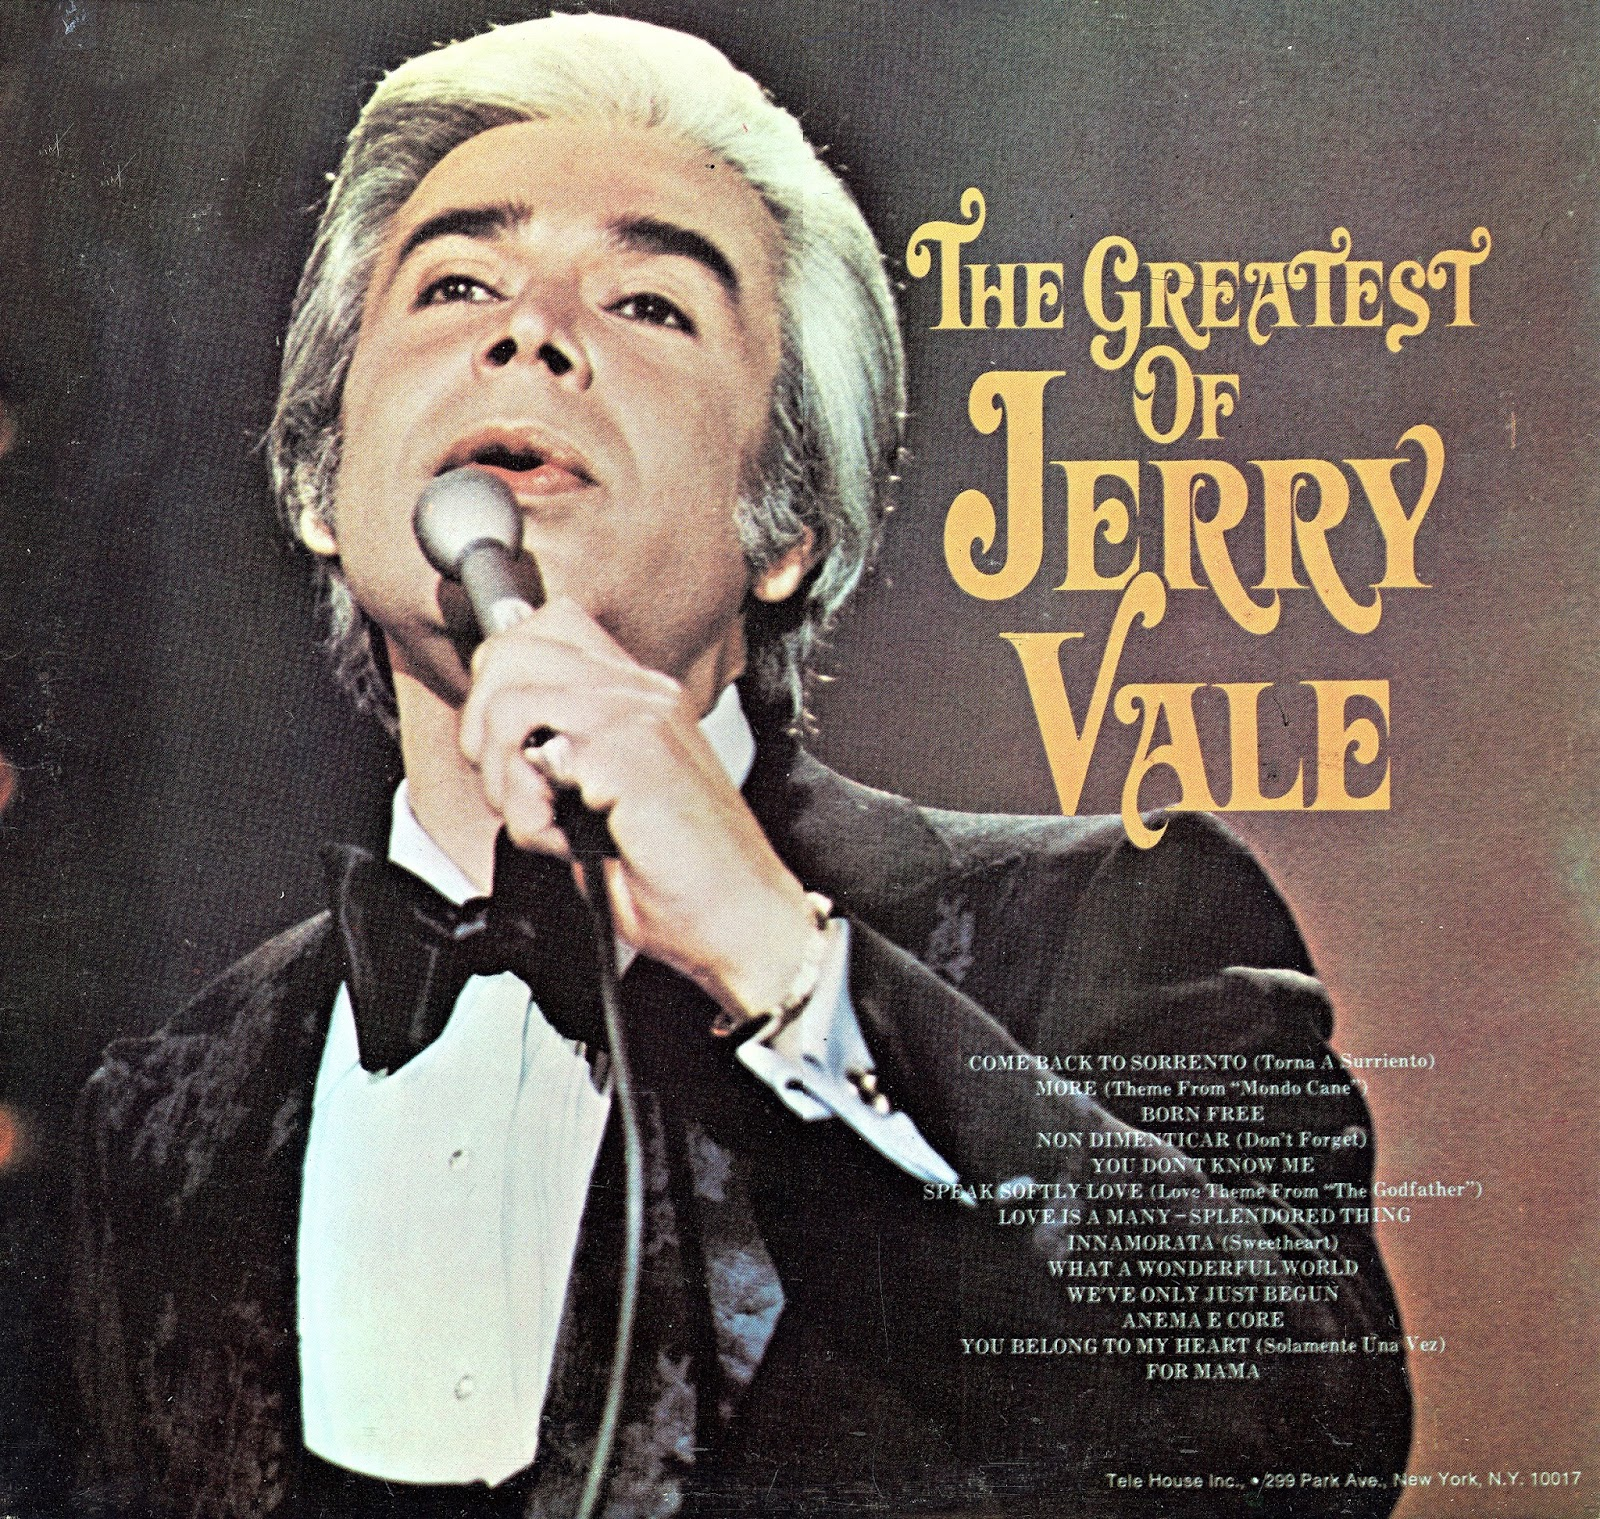 Love me with all of your heart jerry vale